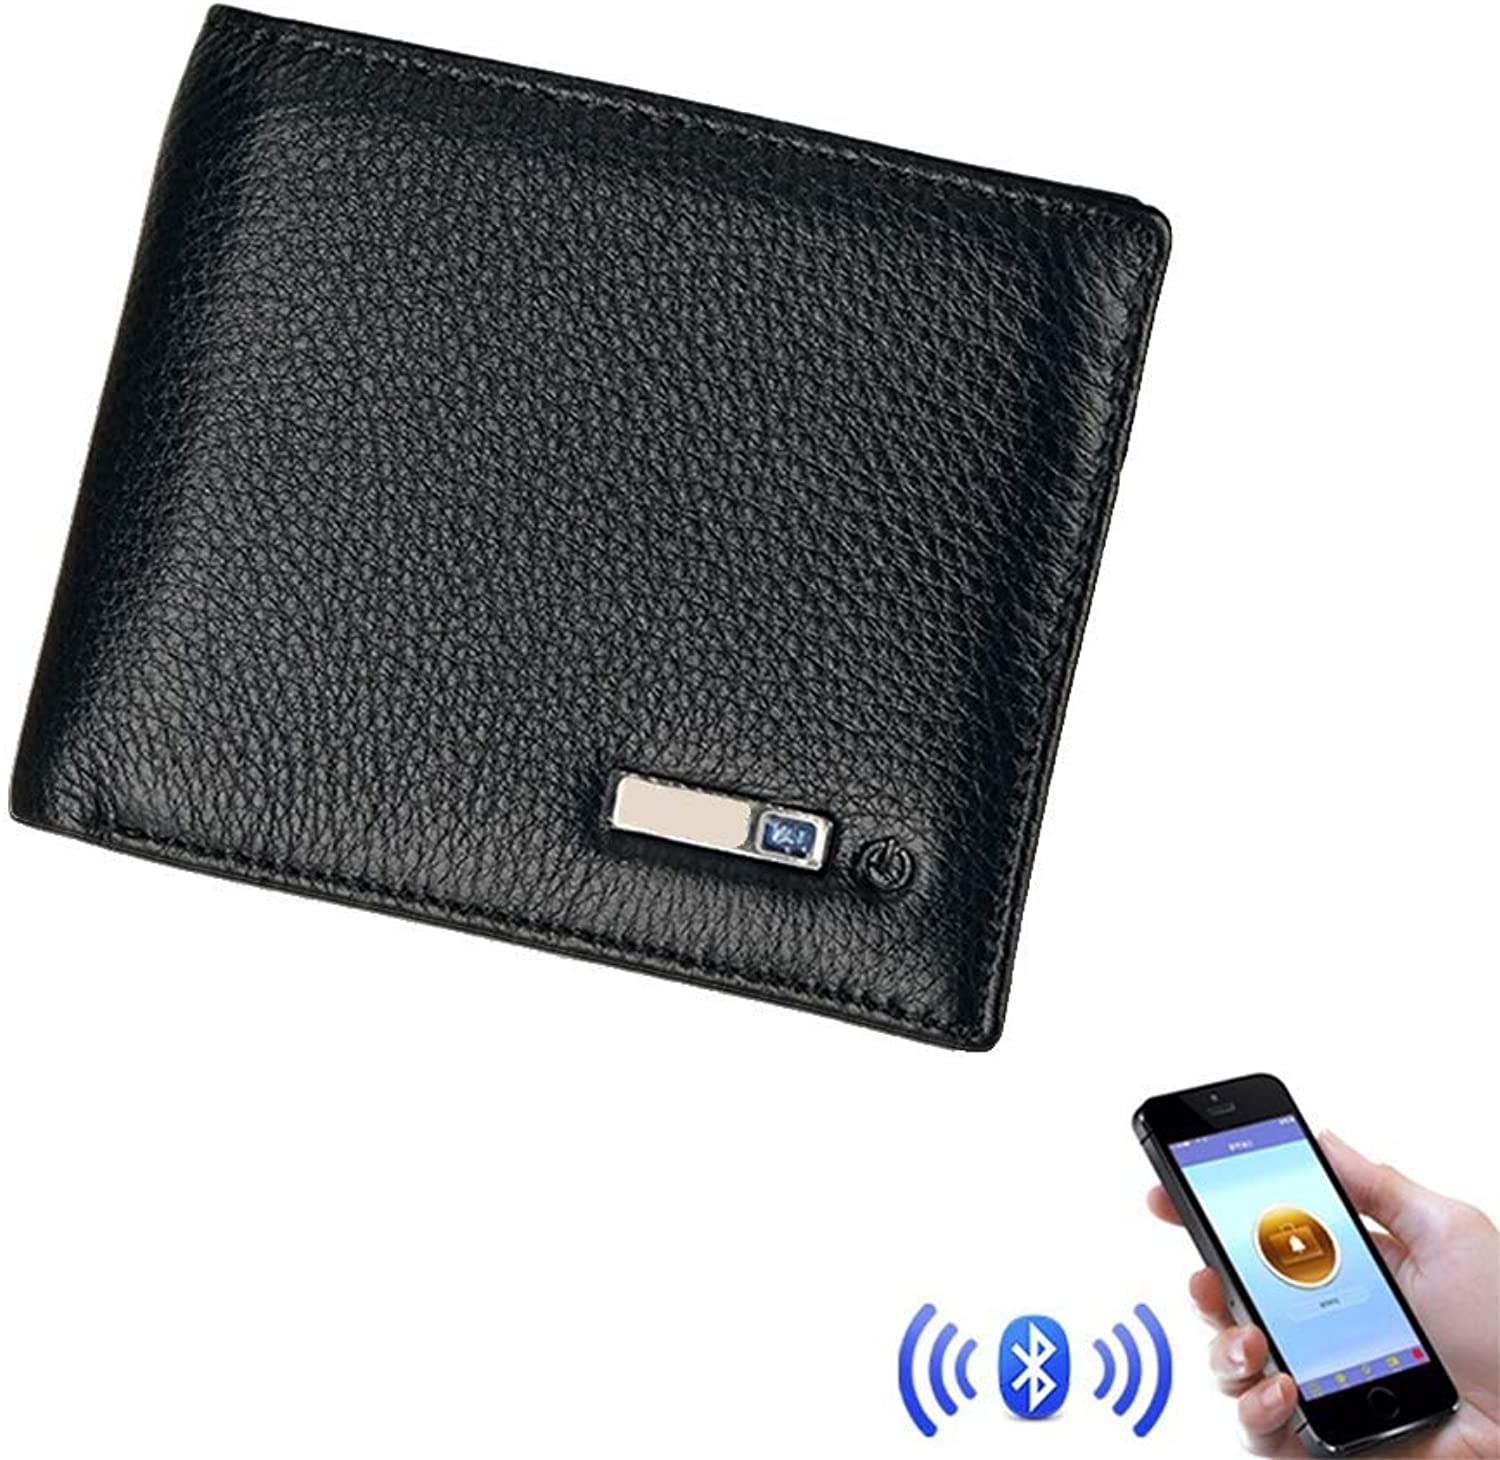 HWL Smart blueeetooth AntiTheft Slim Wallet Cowhide Leather Bifold Purse Support iPhone and Android